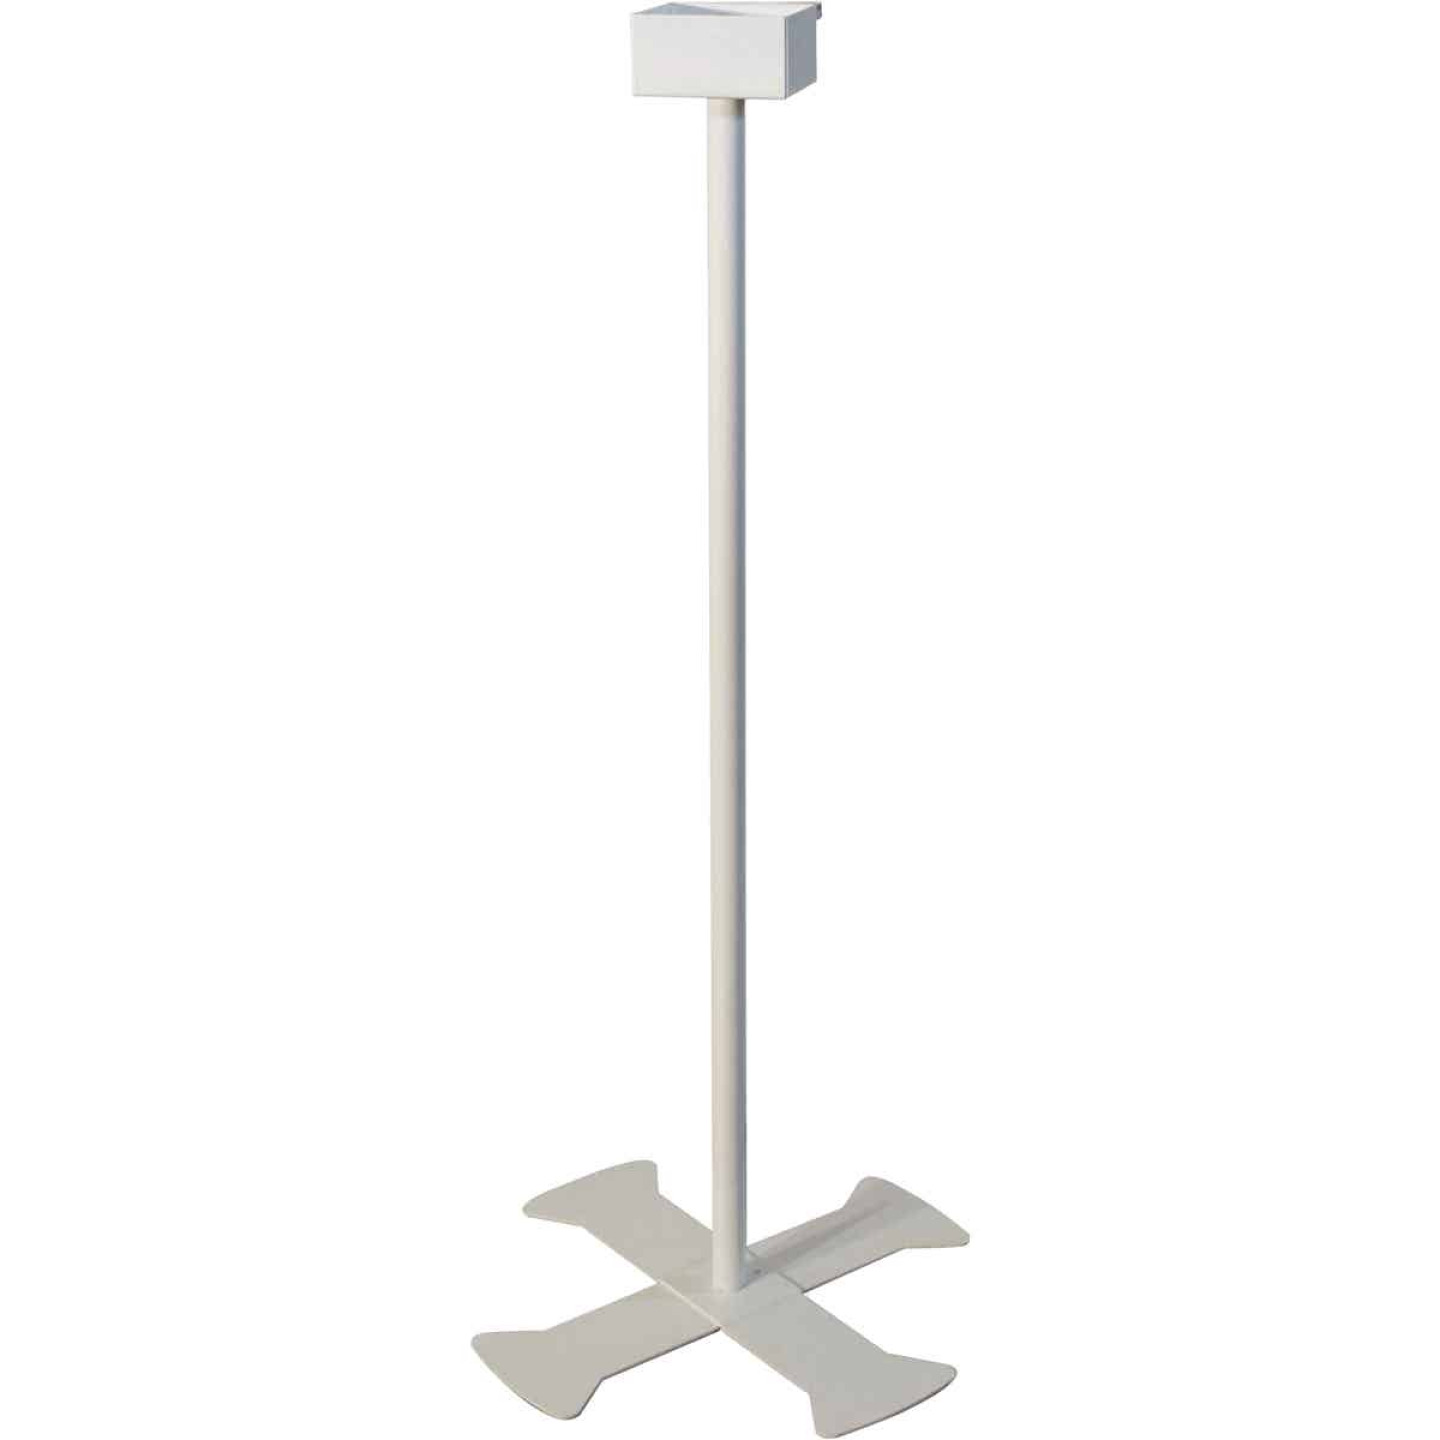 Astoria Commercial-Grade 3 Ft. Steel Disinfecting & Cleaning Wipe Stand Image 2